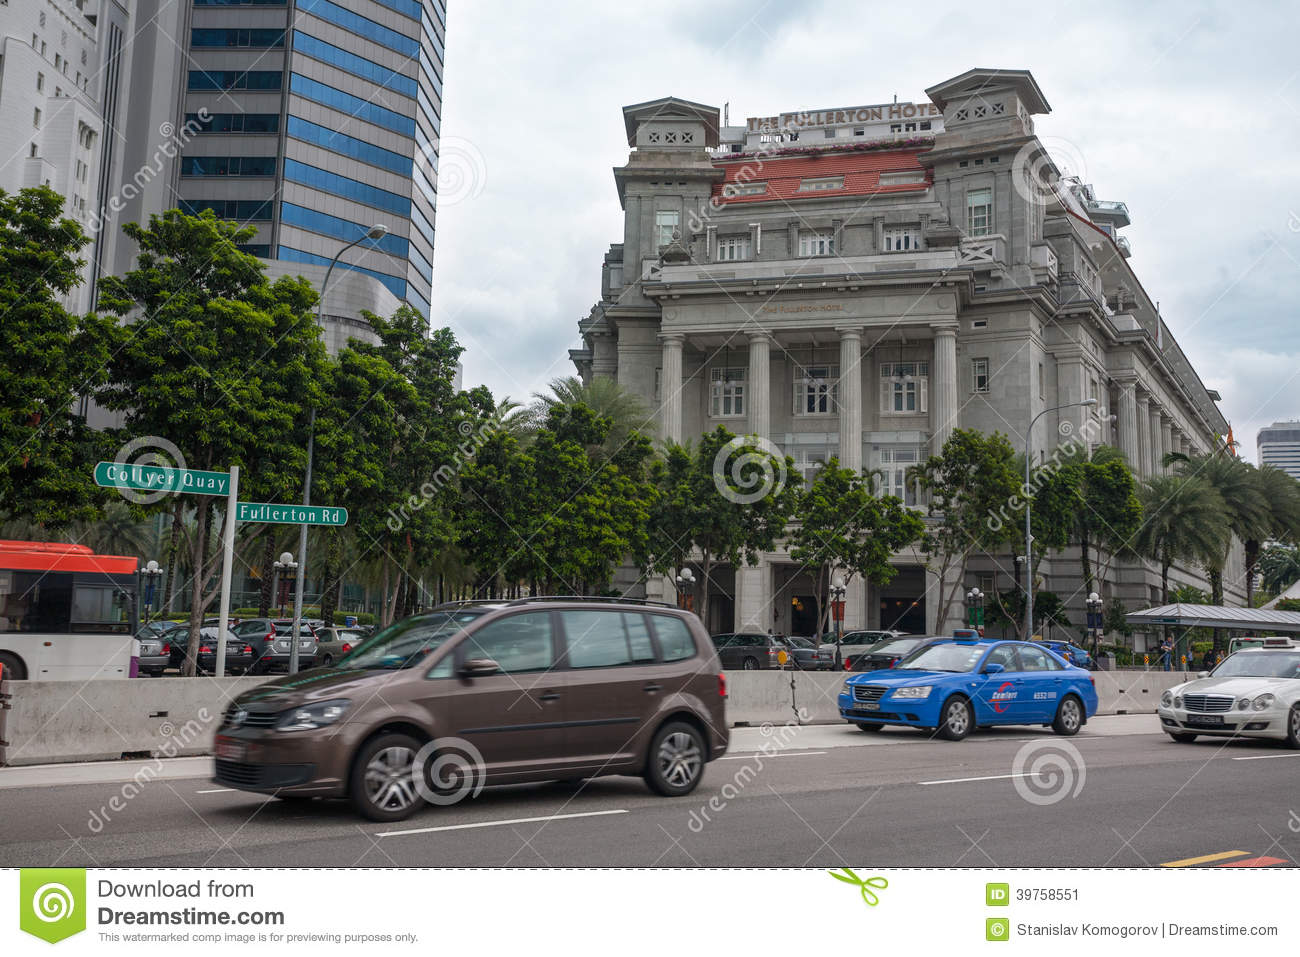 The Fullerton Hotel Singapore | Hotels Near Singapore CBD